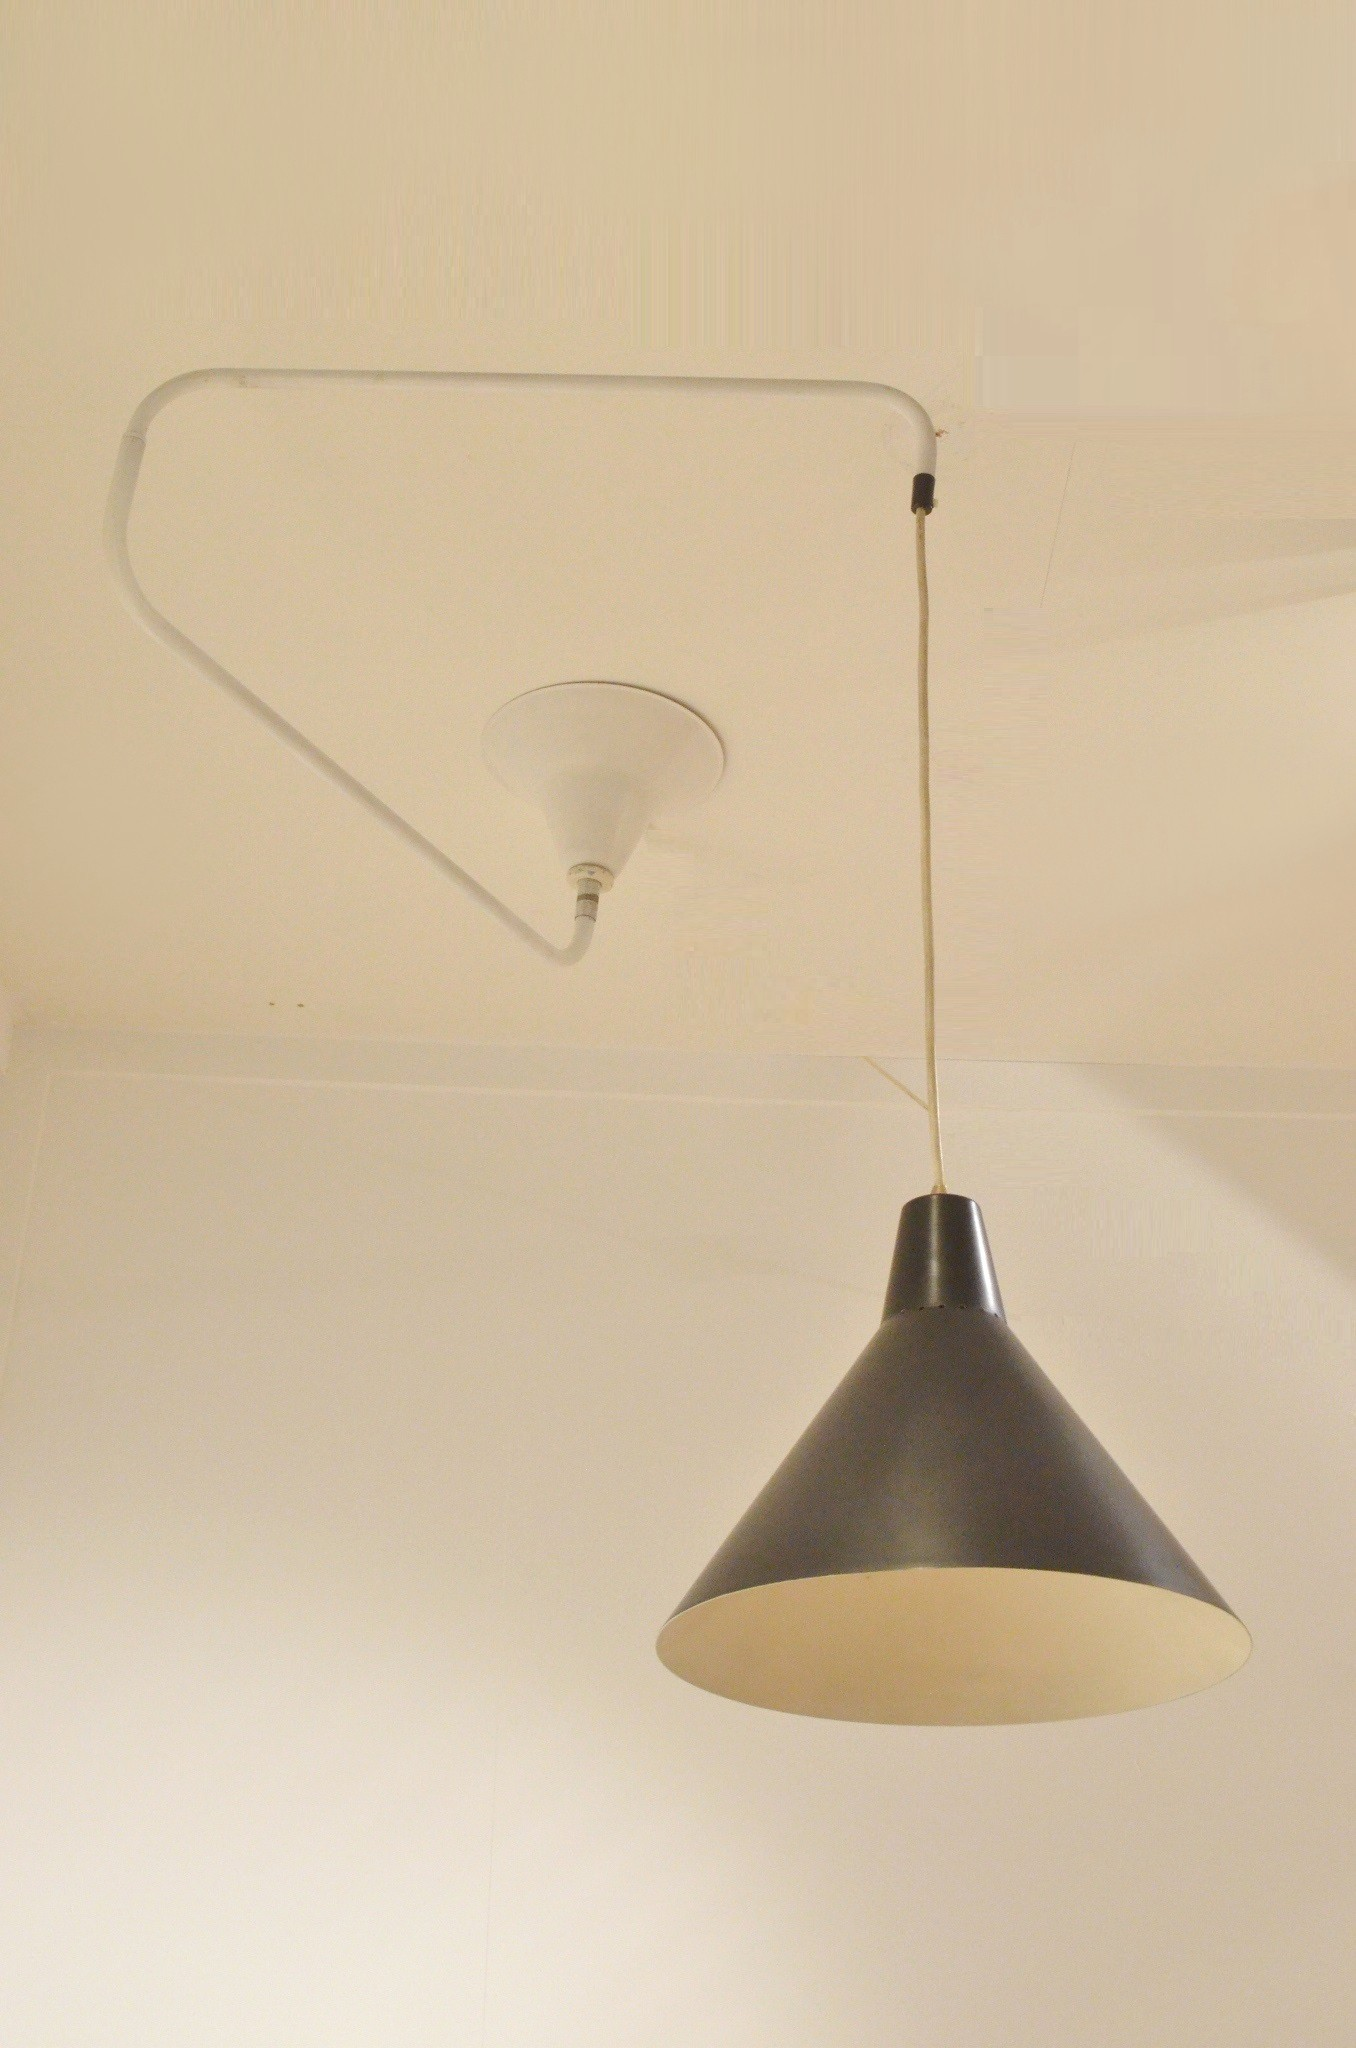 articulated hanging lamp in black and white 1950s design market